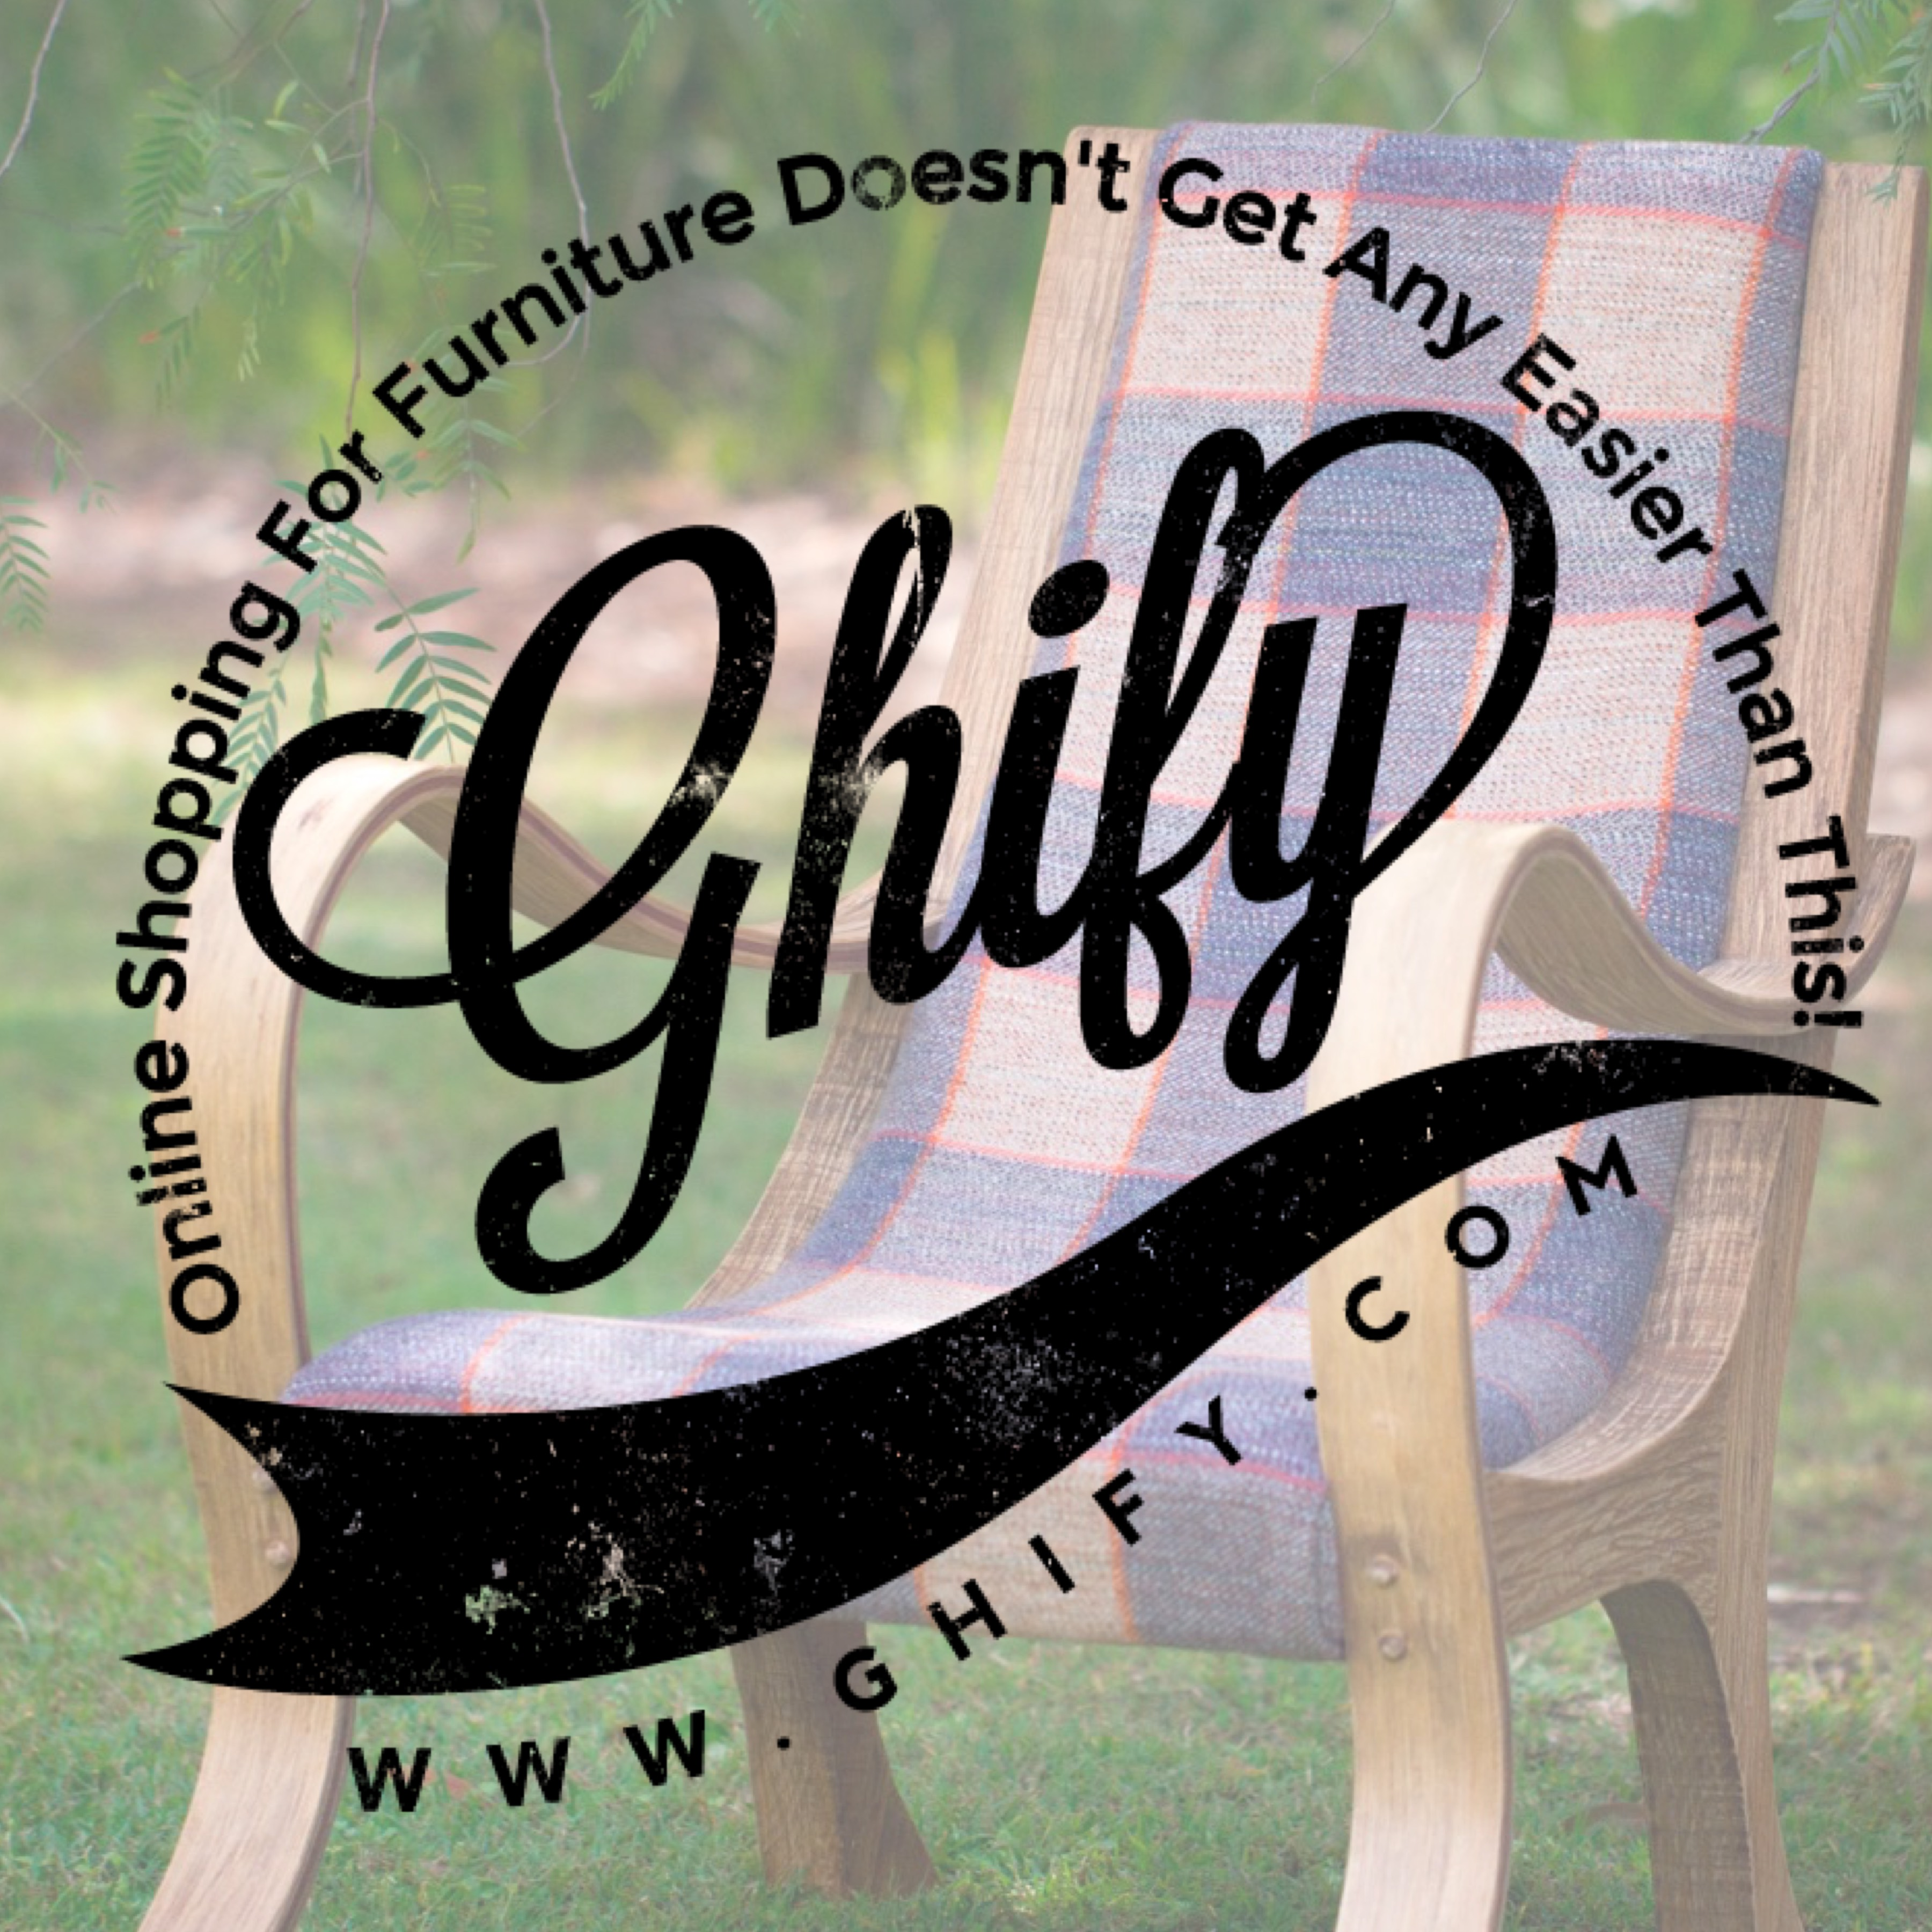 Visit our online store at http://ghify.com